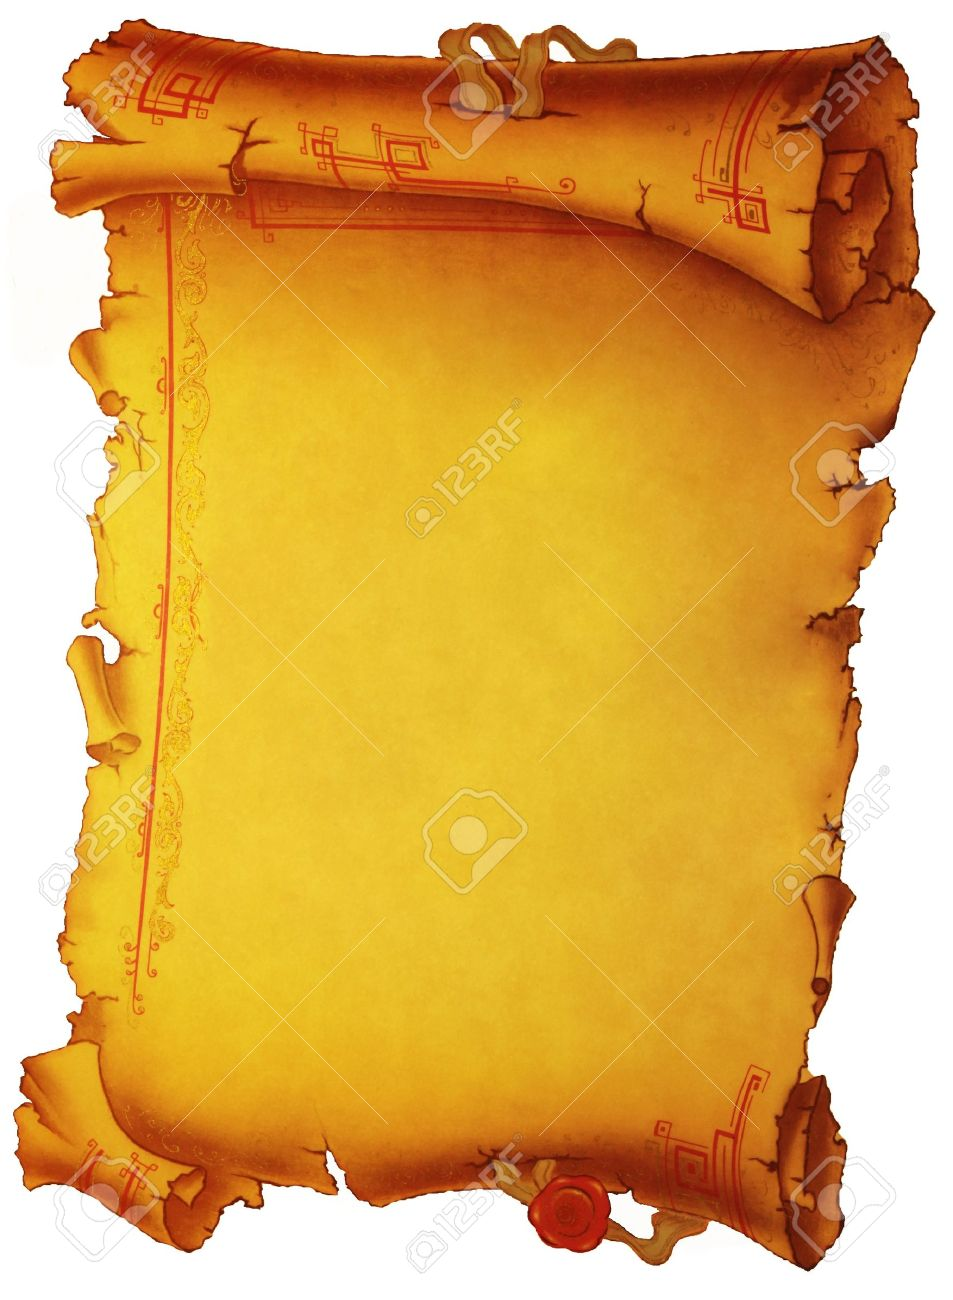 old parchment paper background stock photo, picture and royalty, Powerpoint templates